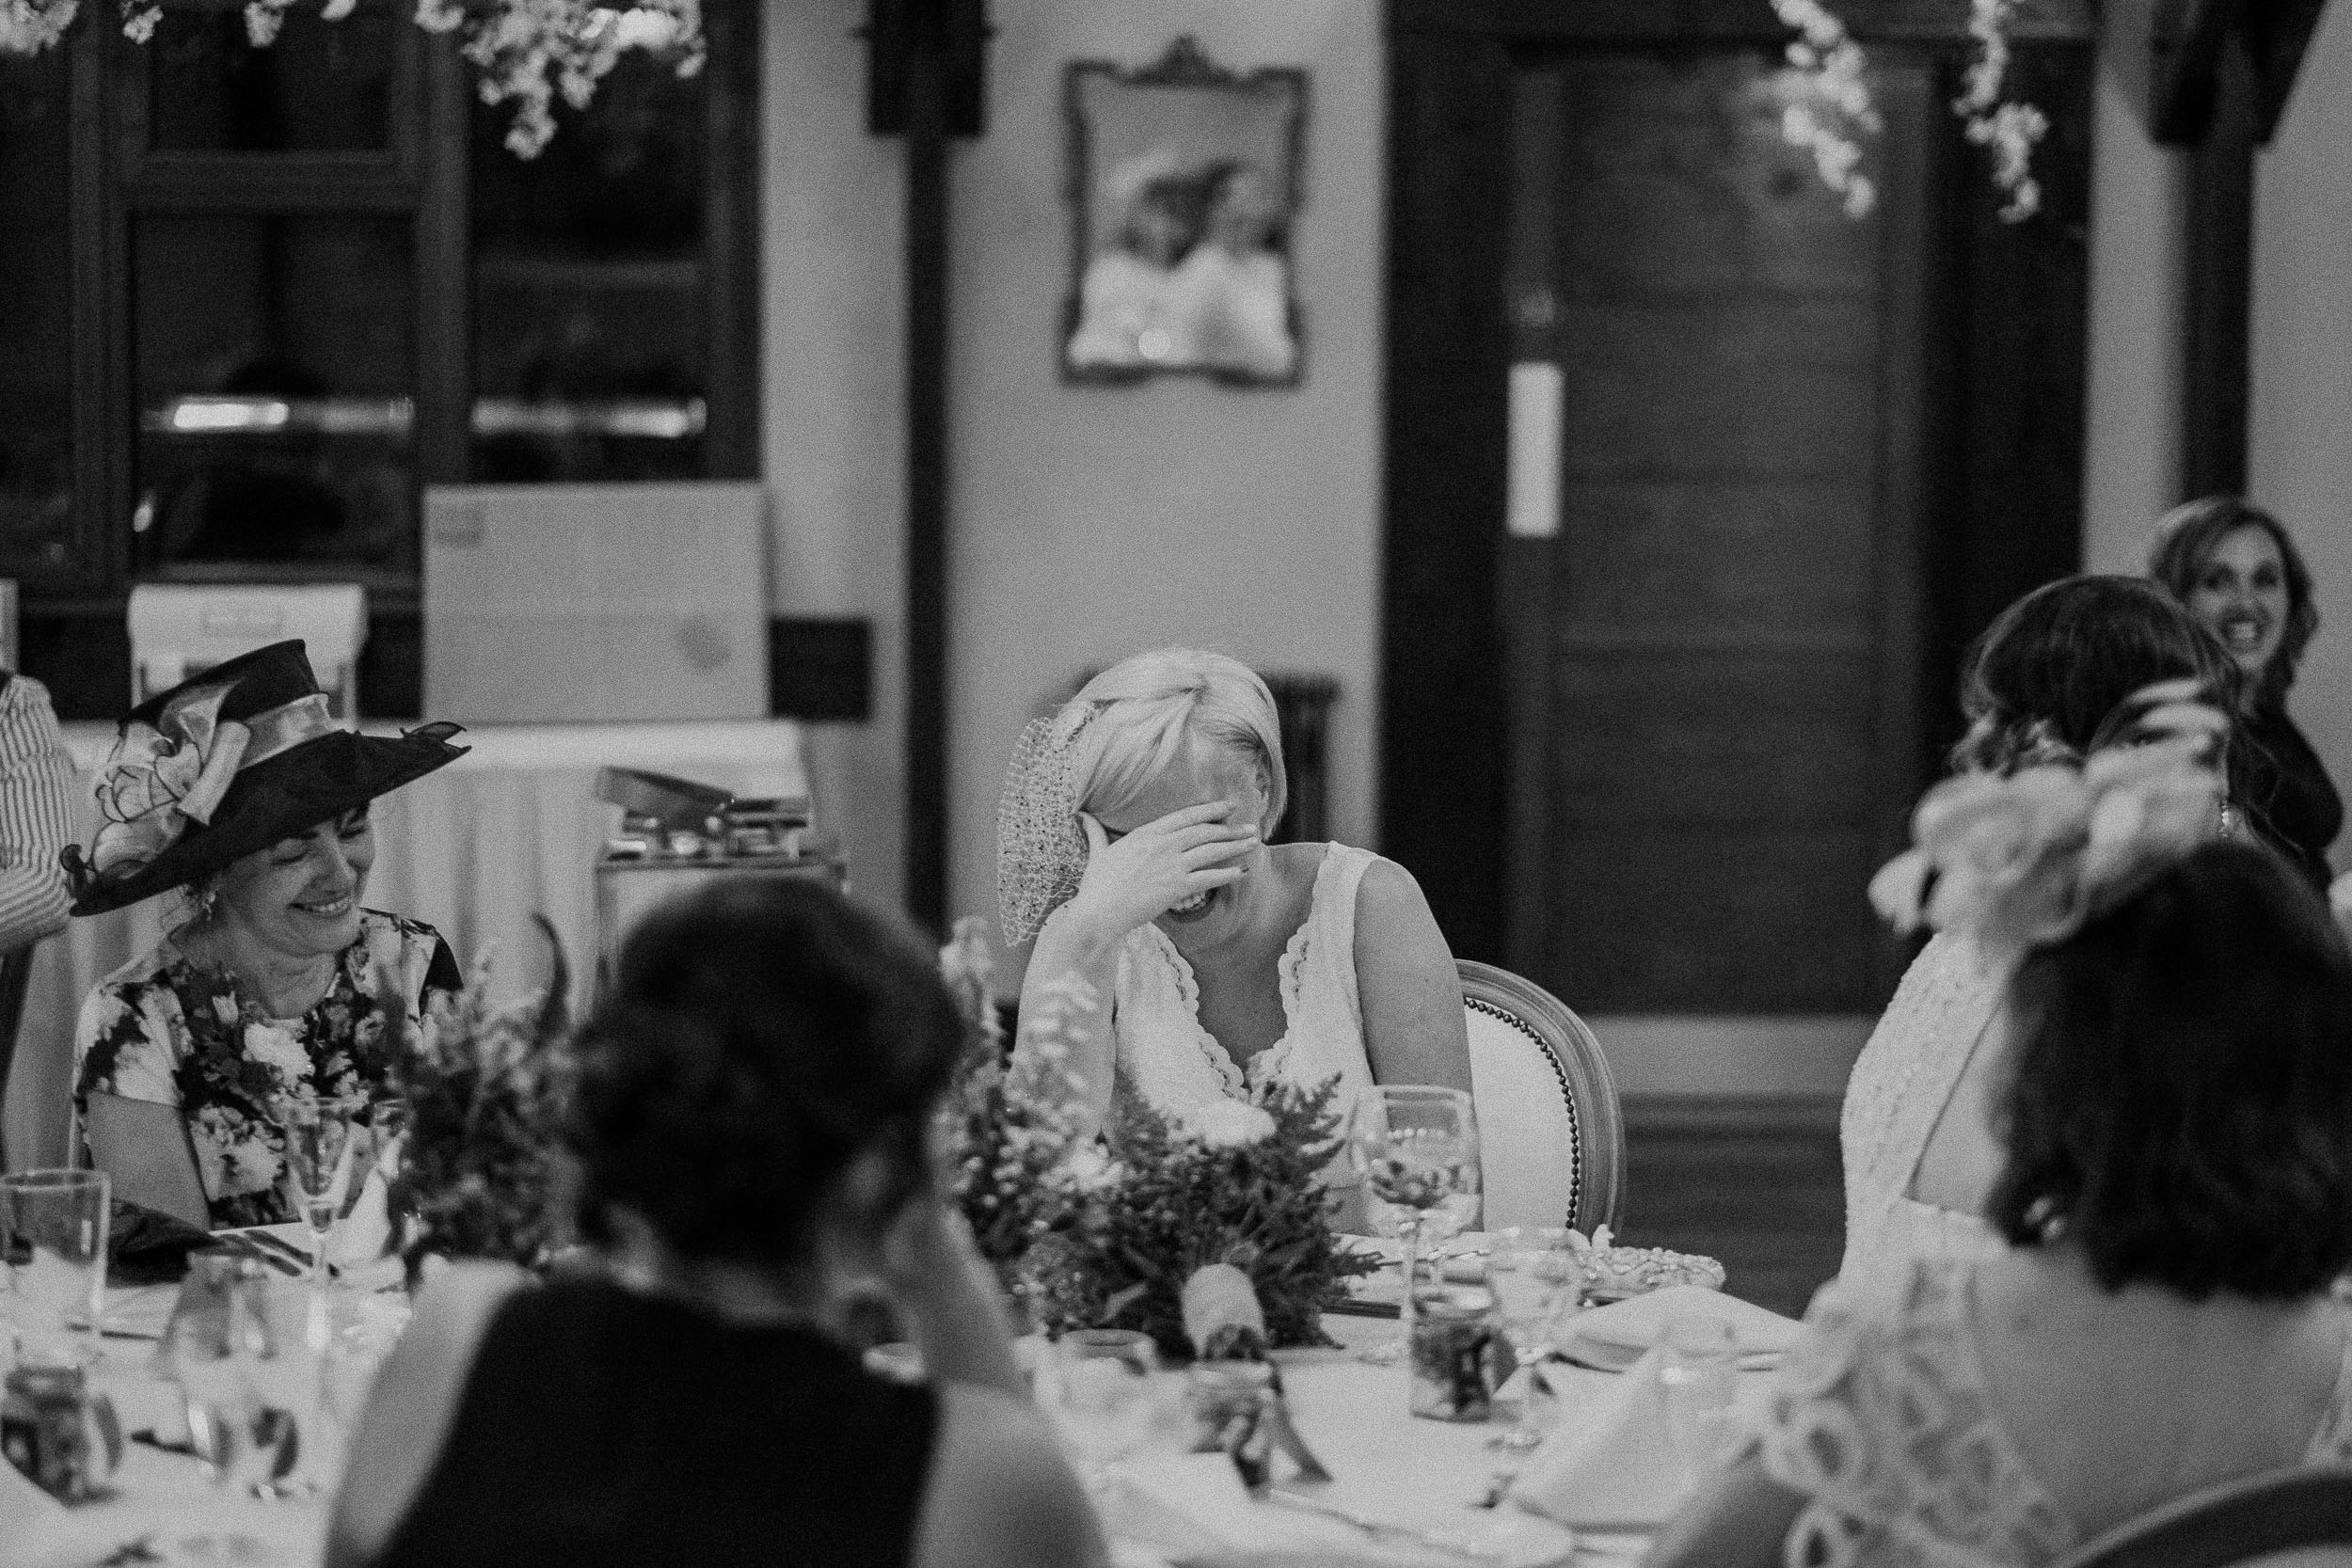 Black and white photo of the bride holding her head in her hands during the speeches at her wedding